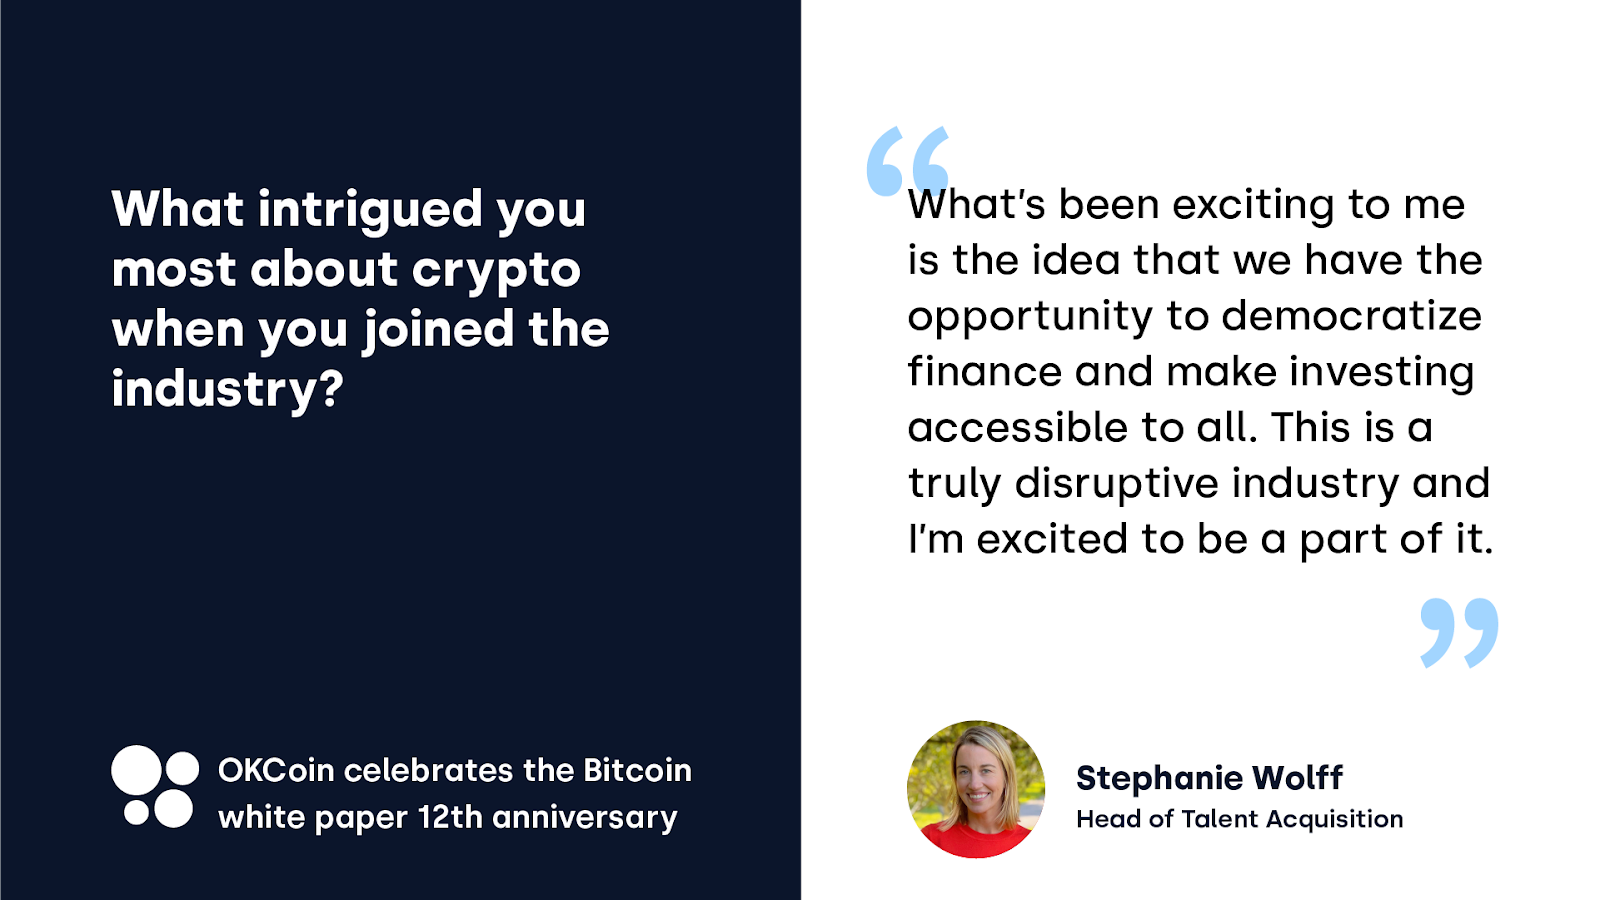 OKCoin celebrates the Bitcoin white paper anniversary — a quote from Stephanie Wolff, OKCoin Head of Talent